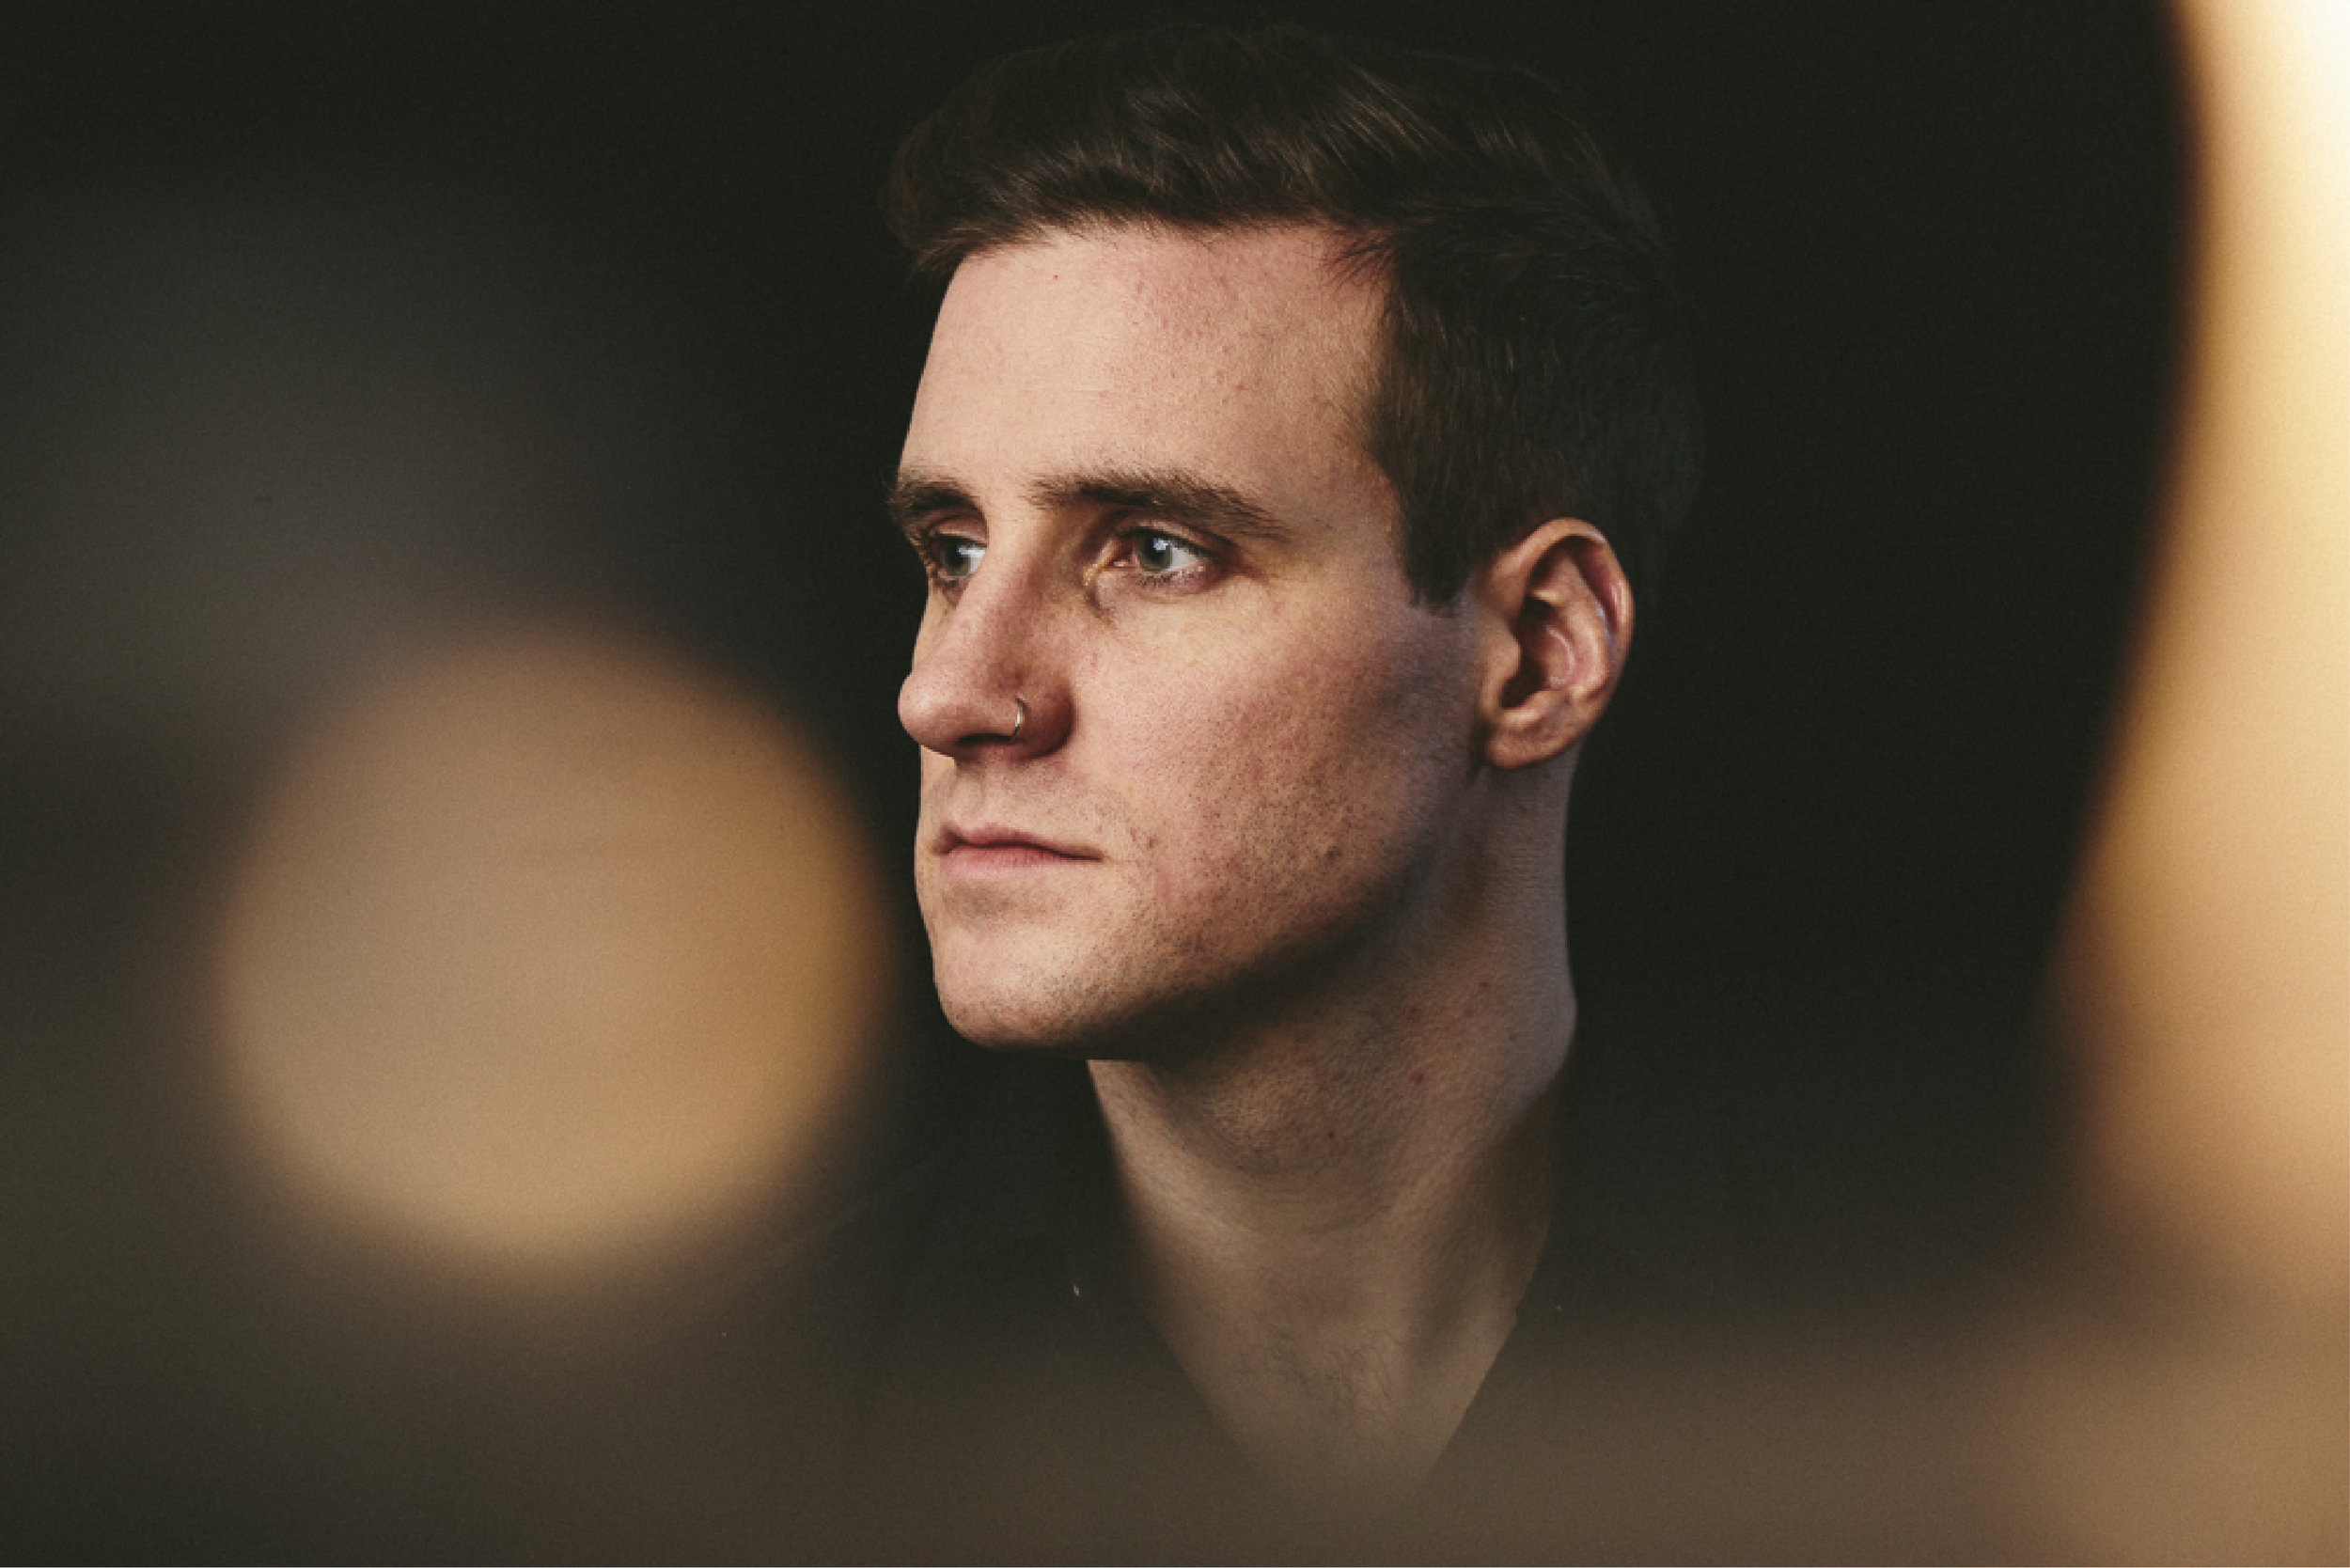 """bio - Will Retherford is a """"Neo Spiritual Pop"""" artist collaborating with the sounds of dance and Anglican mass. Seeking the ecstasy in melody, thought, and bond; Will looks to use the power of music and symbolism to unite people together and to the heart of God. Will is known for his acclaimed debut and sophomore albums"""